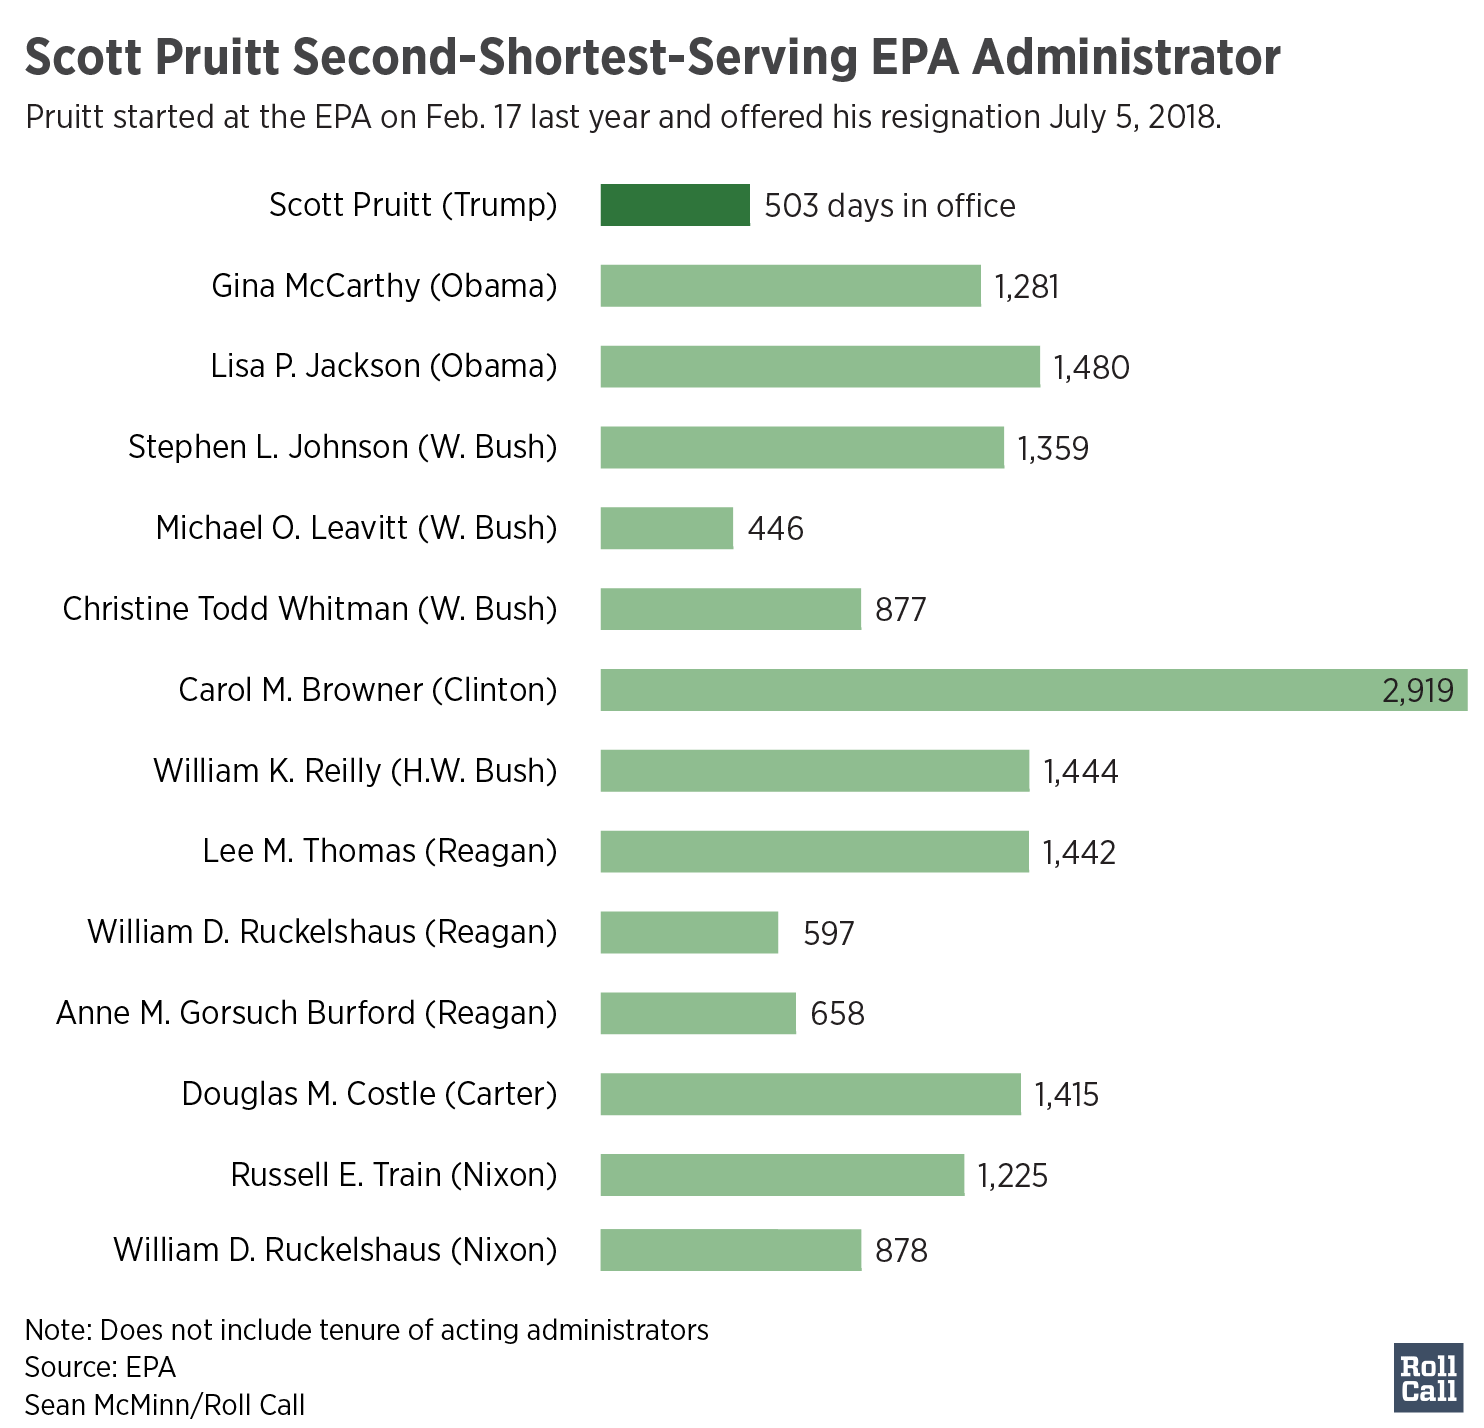 Pruitt_Second-Shortest_EPA_Administrator_time_chartbuilder-01 (2)